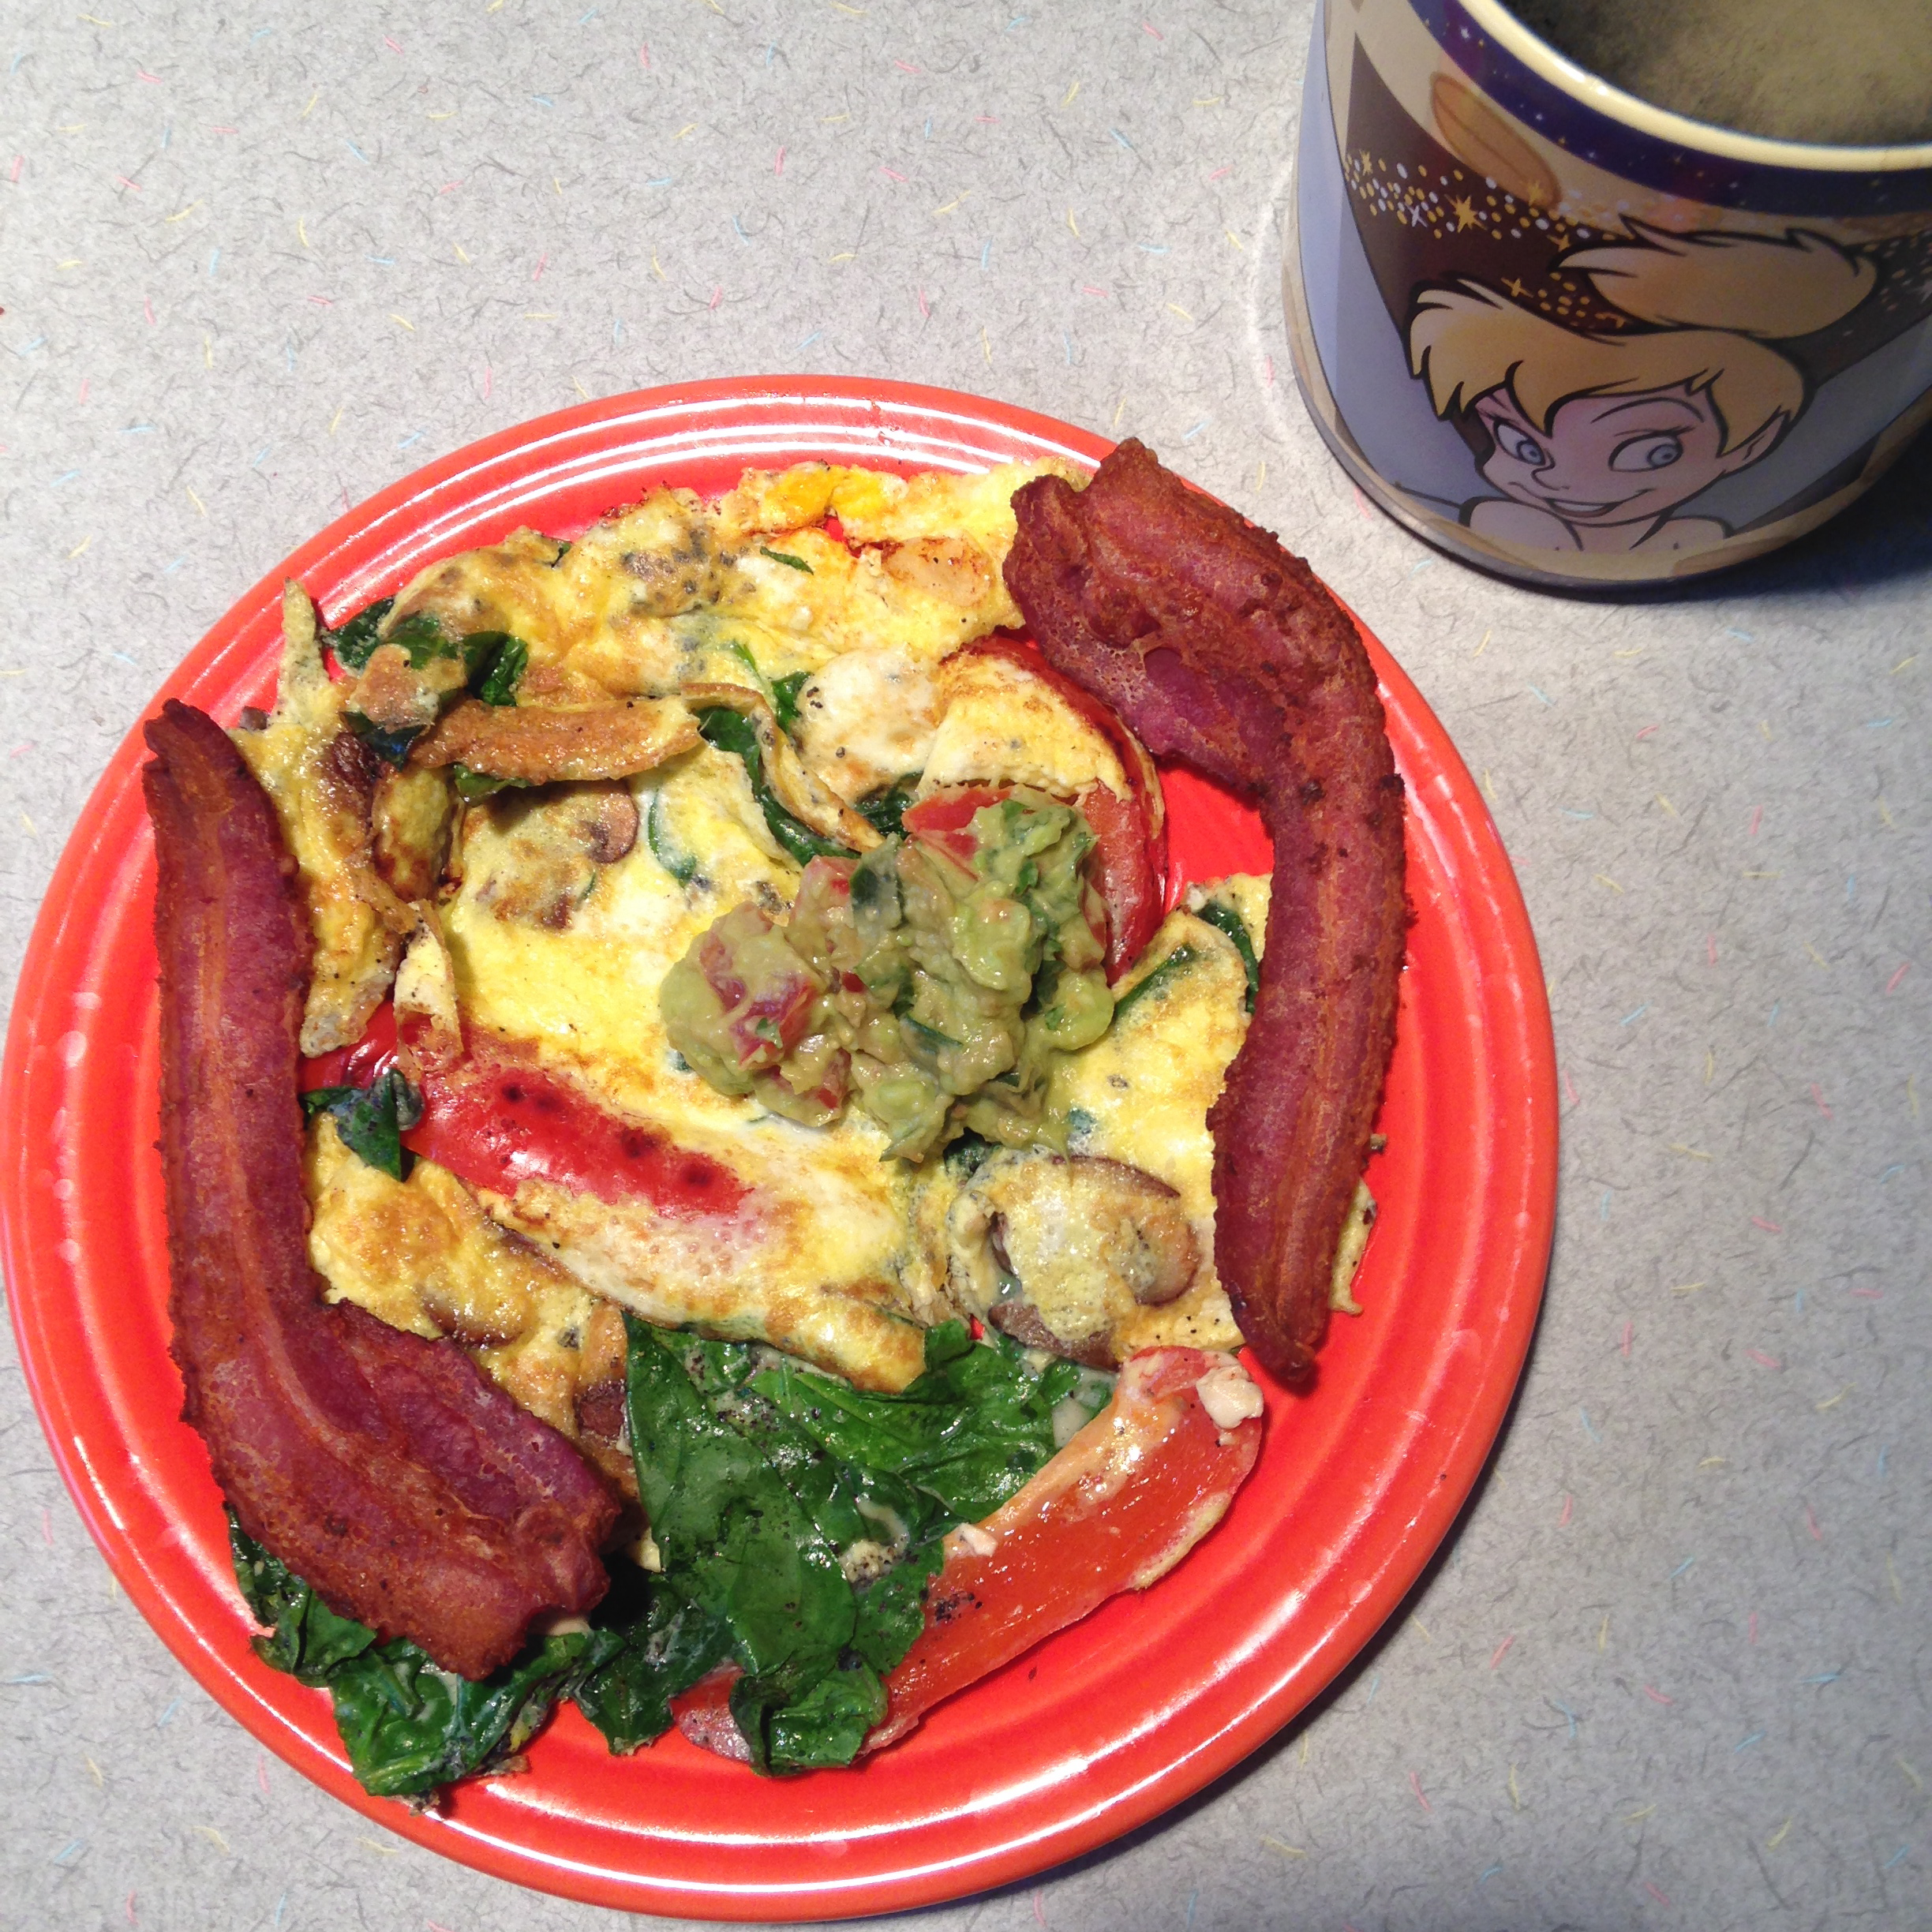 Low carb Atkins breakfast meal